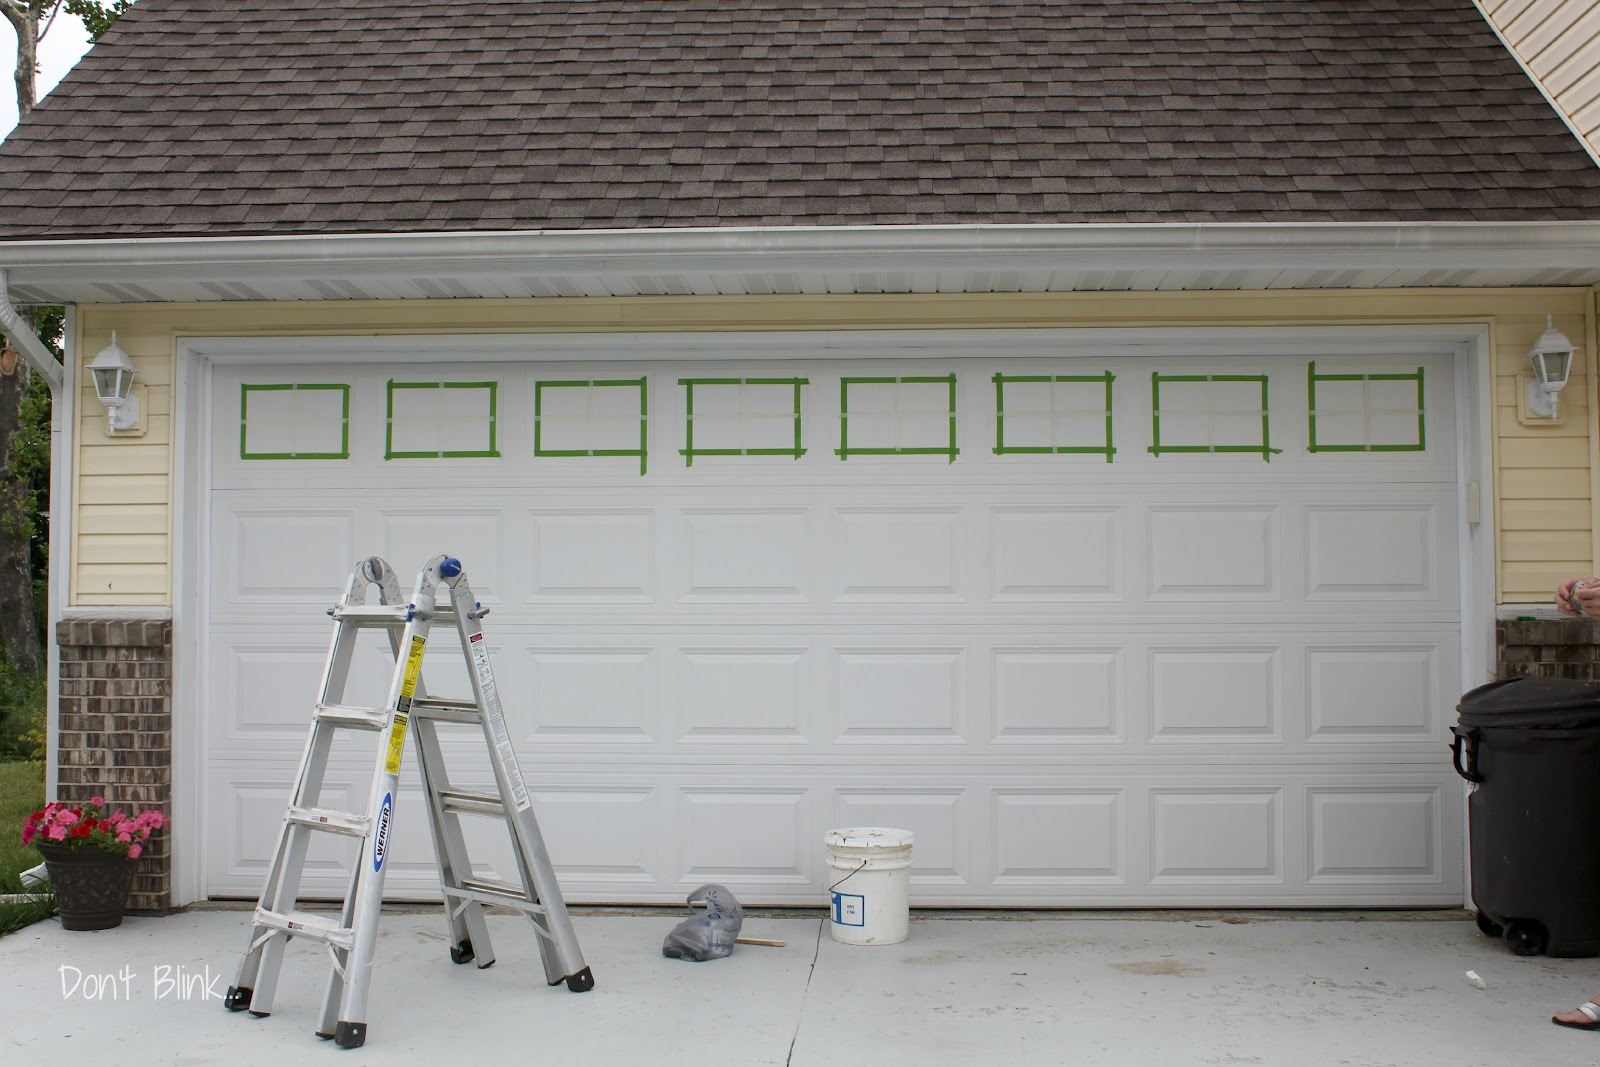 Garage door paint ideas viewing gallery - Garage door painting ideas ...